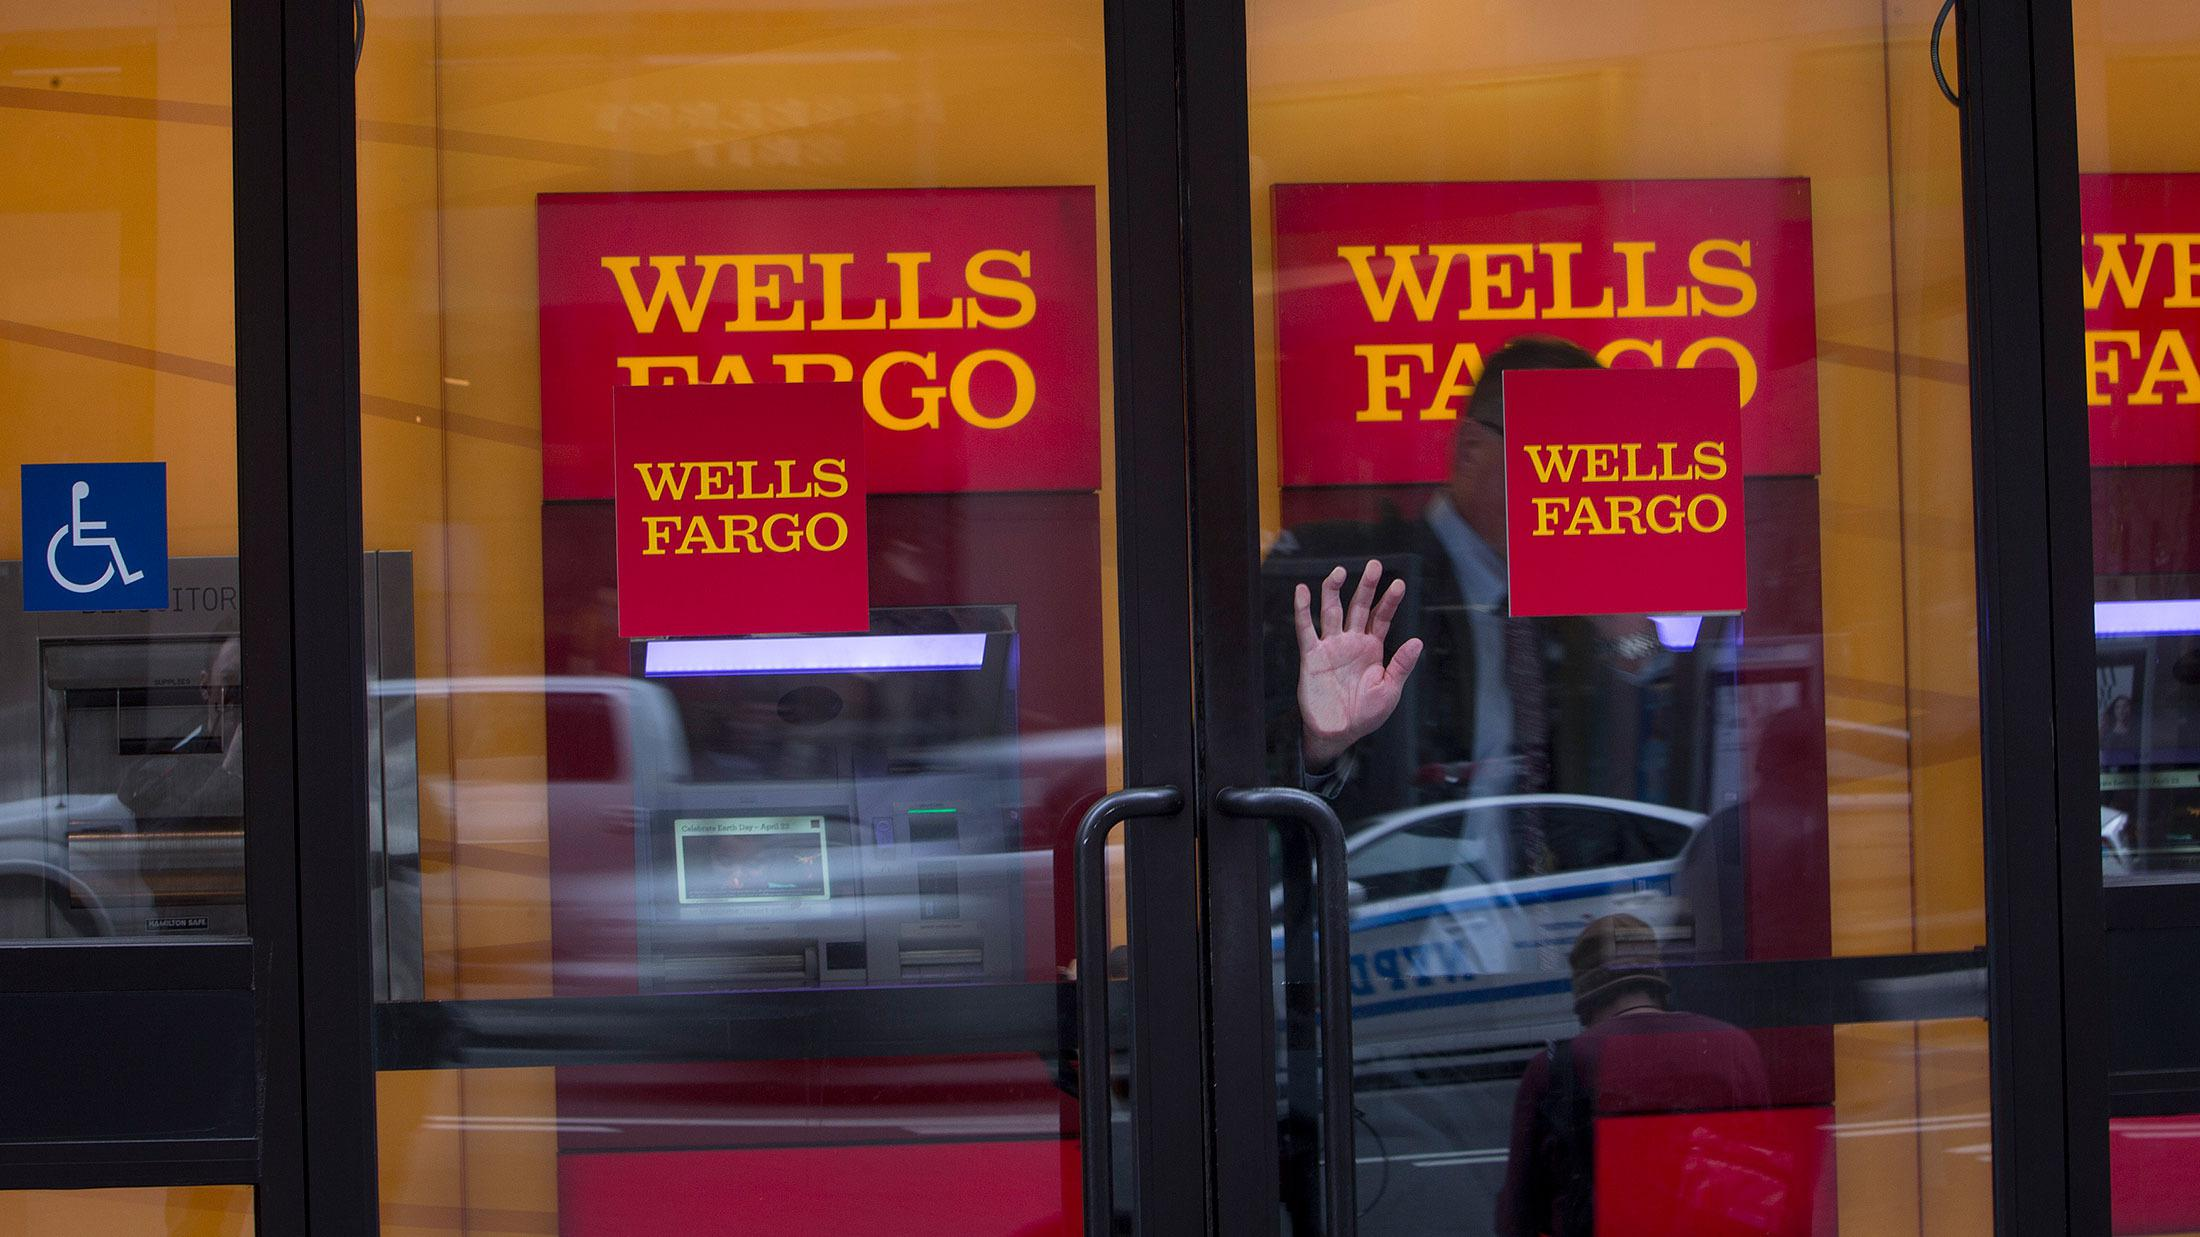 Wells Fargo Sued Over Firings For Missed Account Quotas. Central Michigan University Online Application. International Translation Services. Microsoft Business Intelligence. Hp Officejet 4100 Series Airtel Prepaid Plans. American Express Small Business Network. Cocoa Powder Hot Chocolate Recipe. Legal Assistant Schools Colleges In Mobile Al. Toshiba Laptop Replacement Ponte Vedra Movers